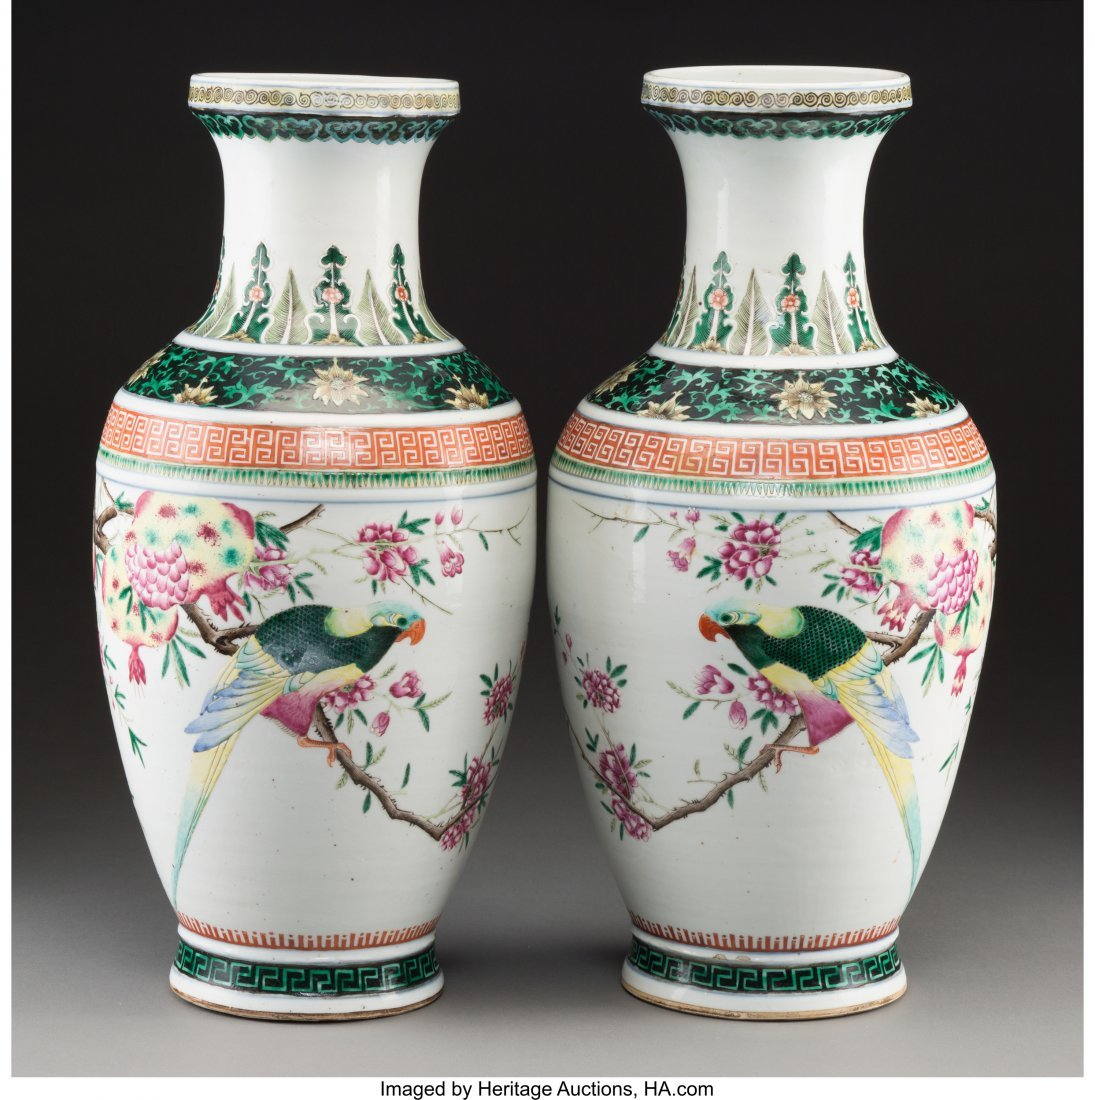 78373: A Pair of Chinese Enameled Porcelain Parrots wit